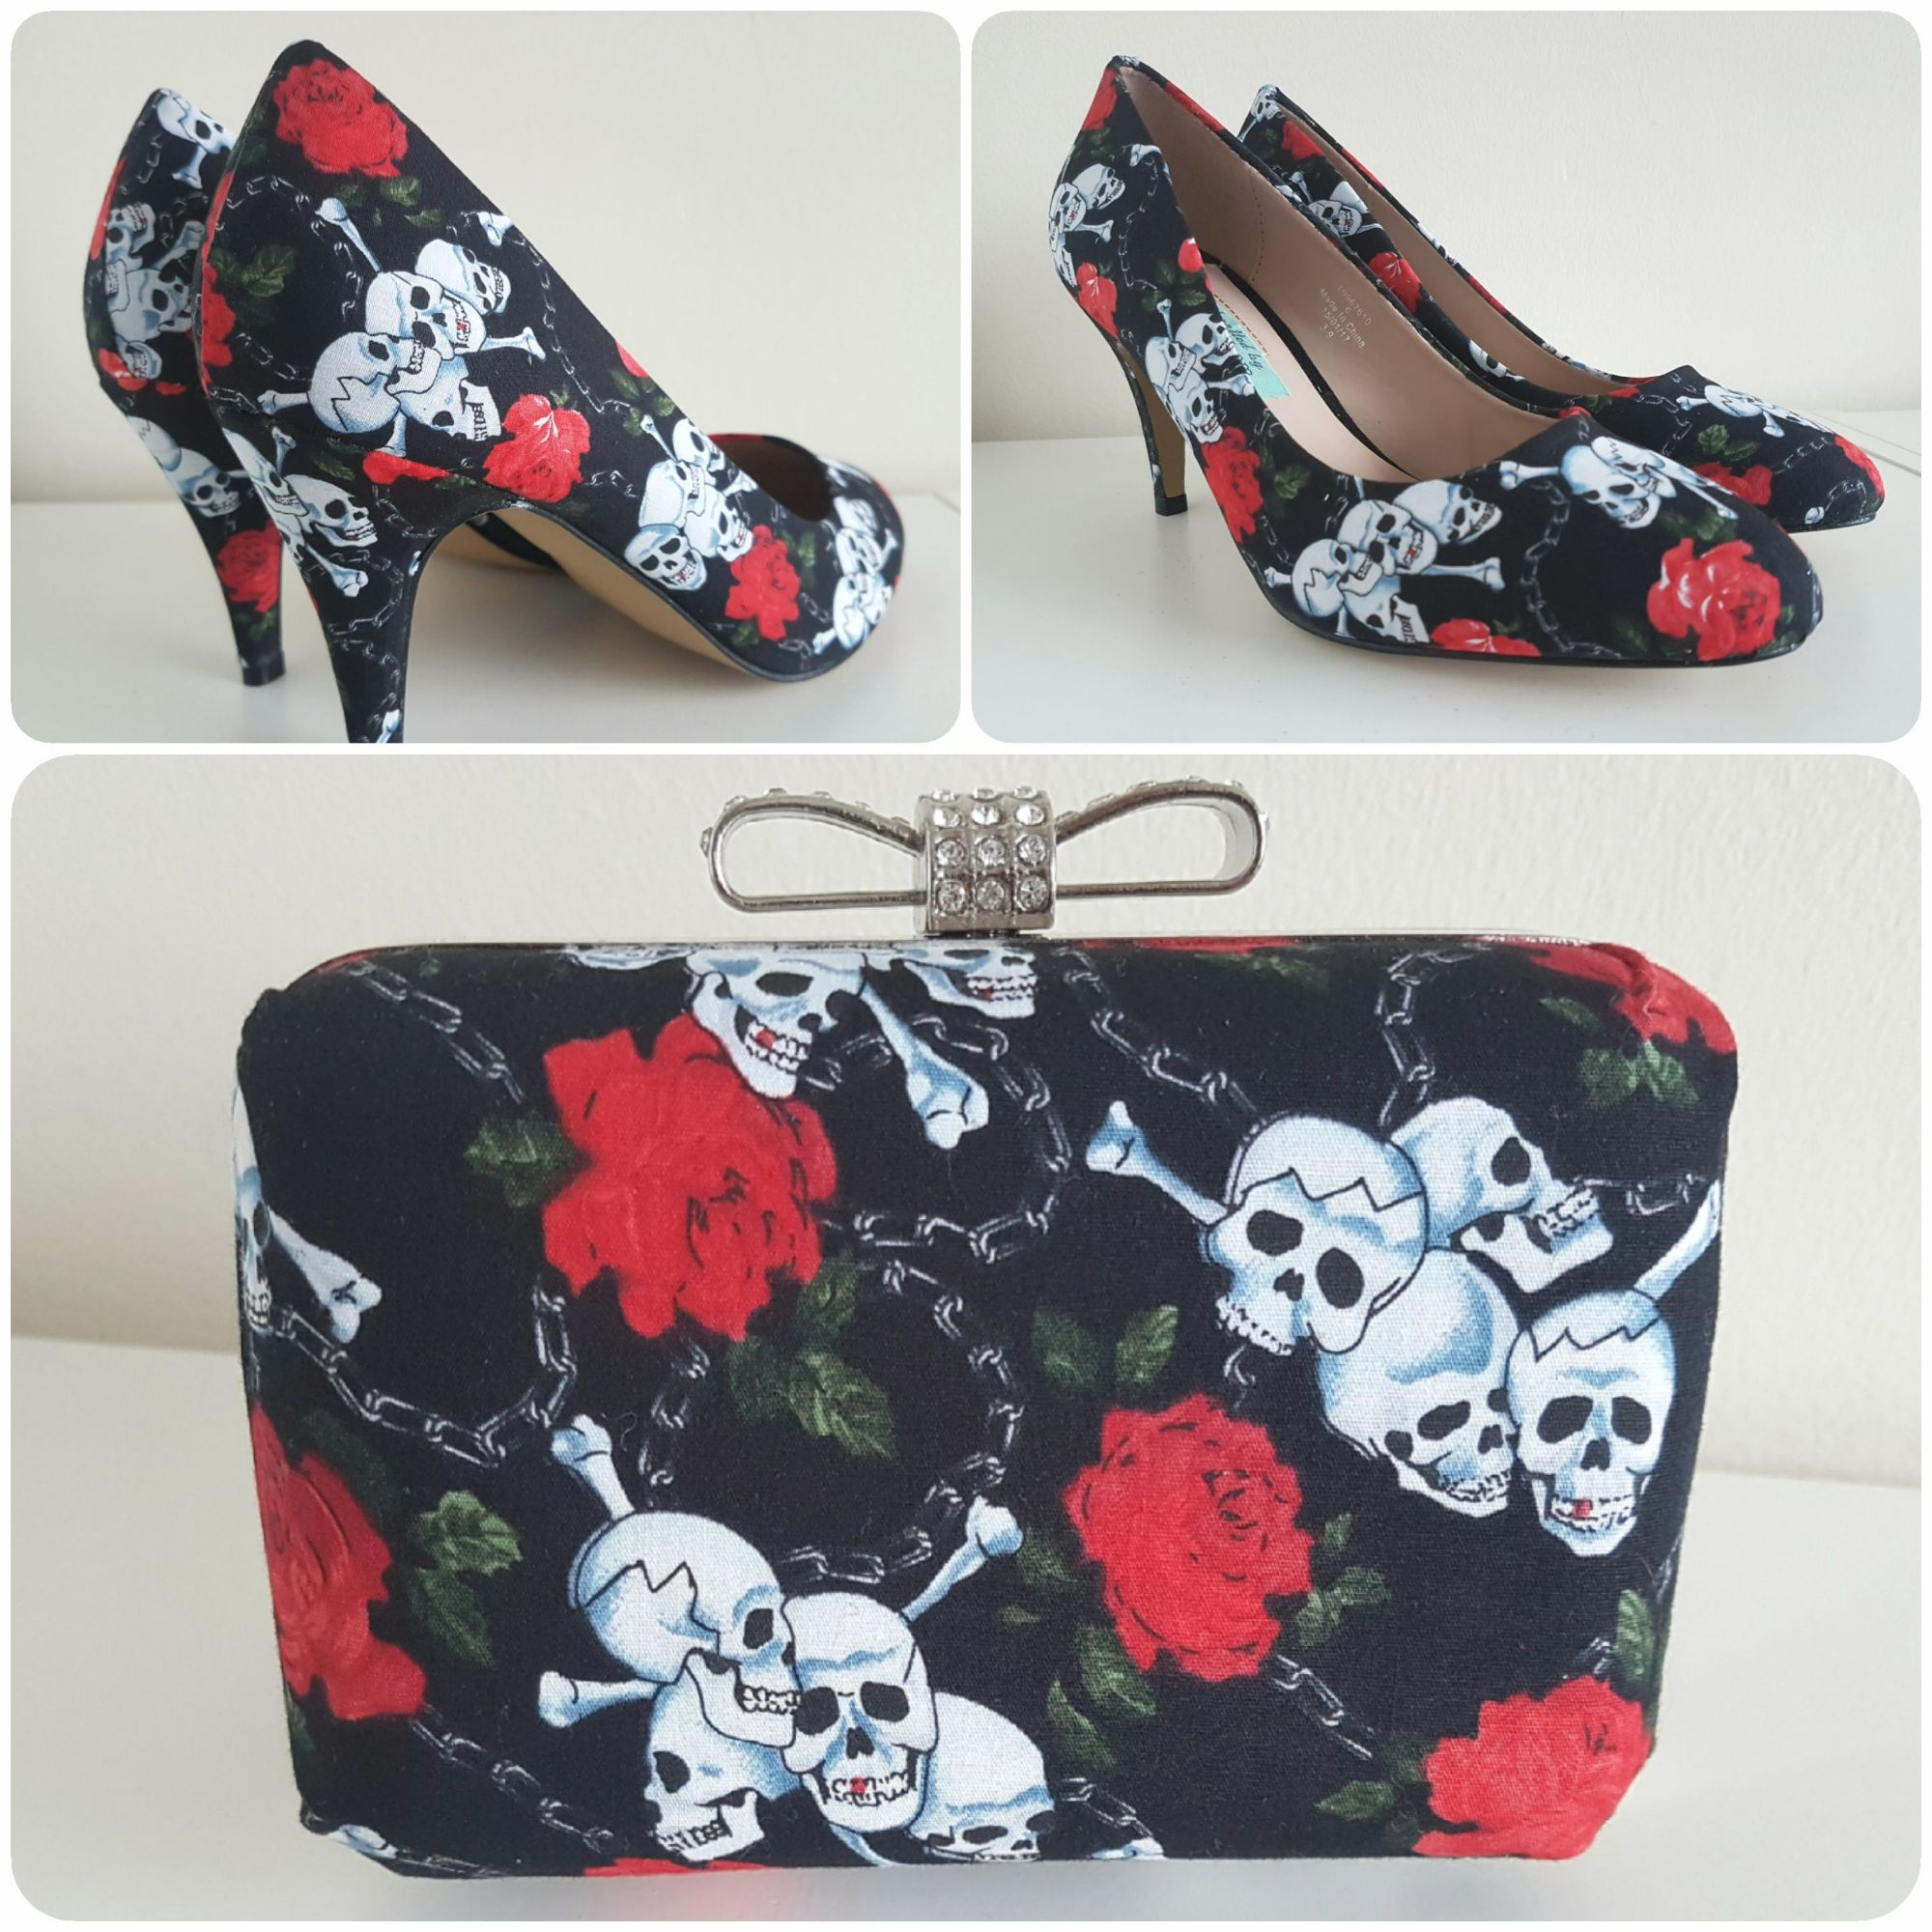 Gothic shoes, Skull & Roses shoes & bag, alternative wedding shoes